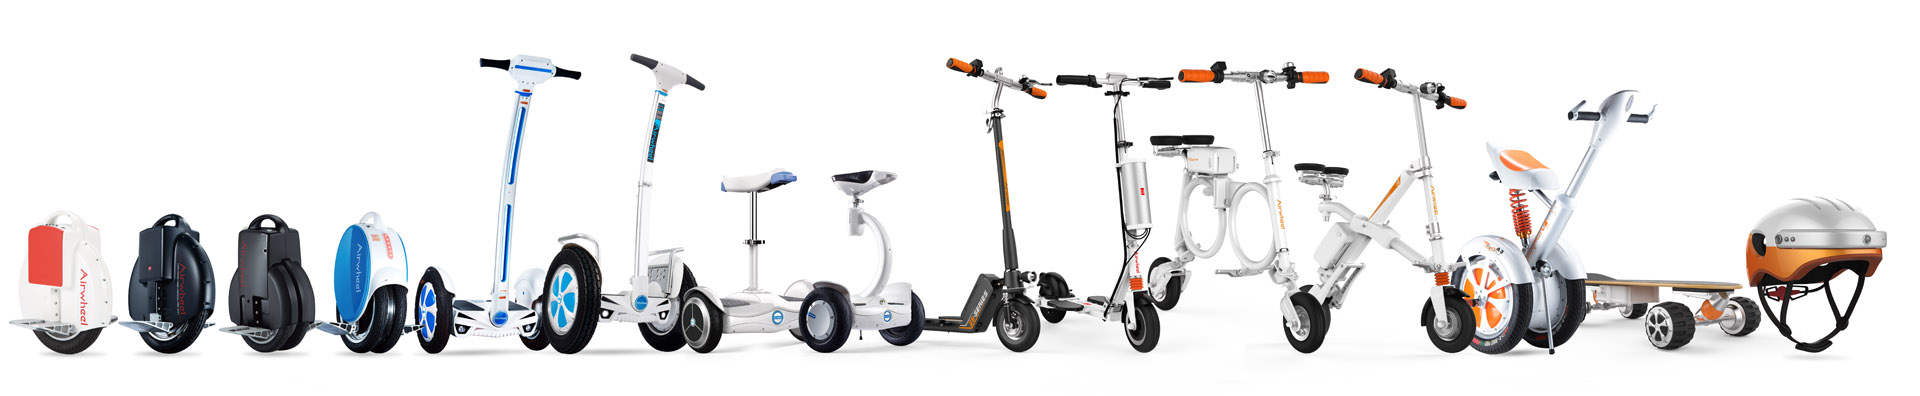 Airwheel, electric unicycle,electric scooter